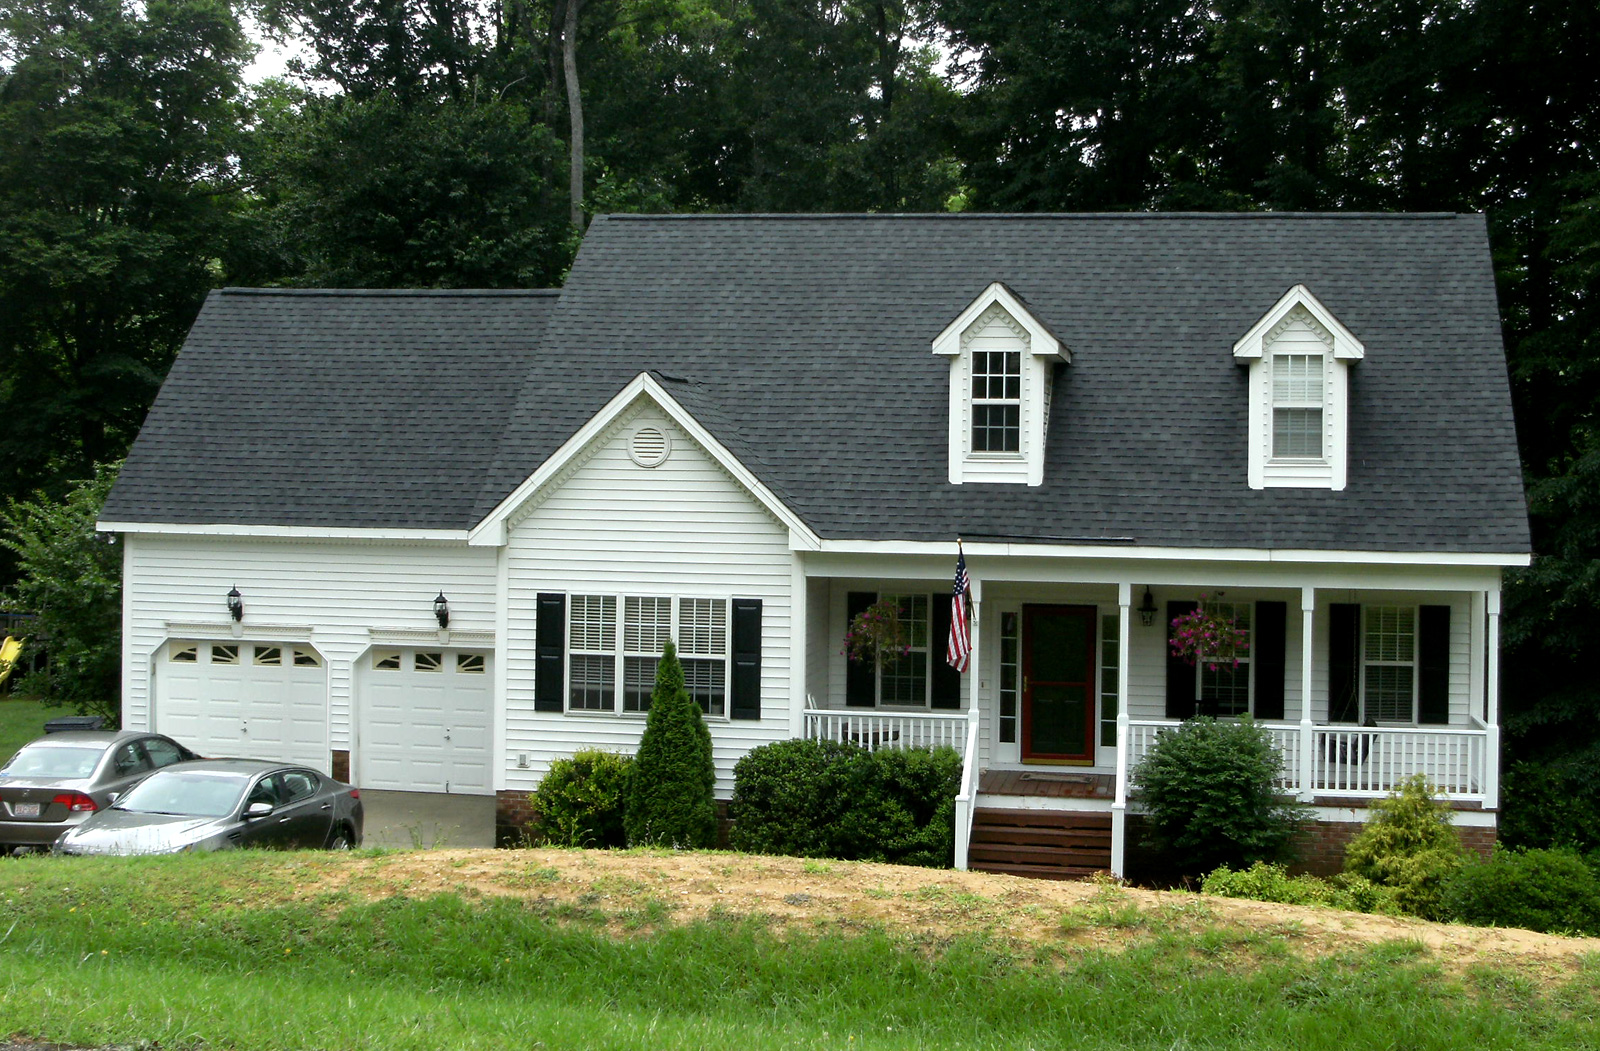 Roofing And Vnyl Siding Columbia Sc American Roofing